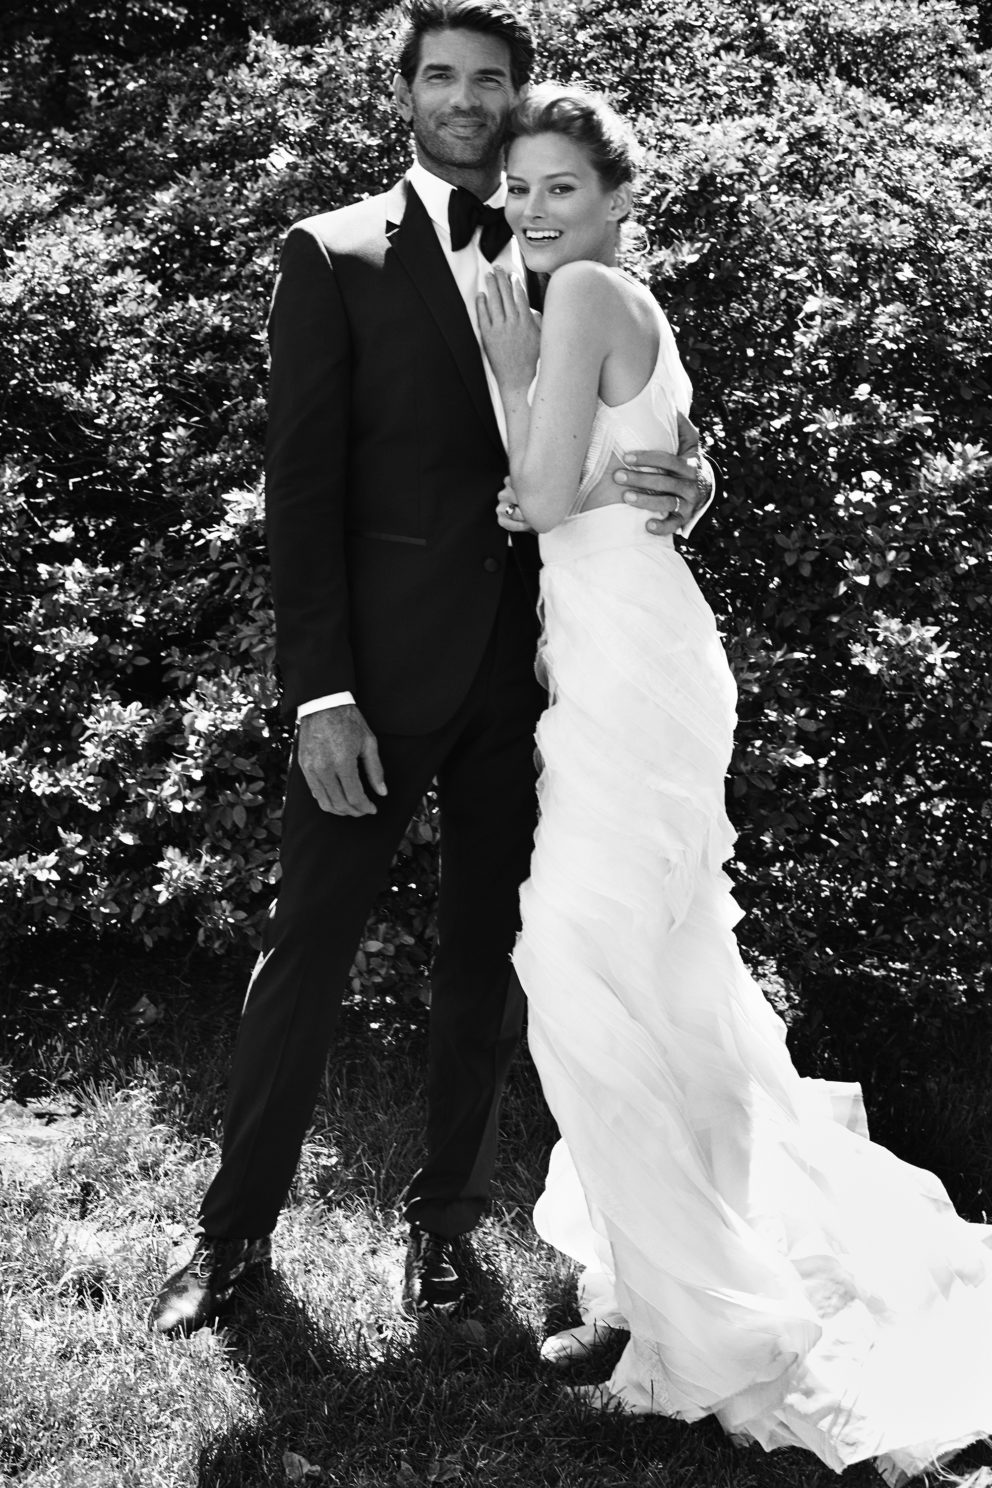 160609 0090 Yahoo Style Bridal Christian Hogstedt 165